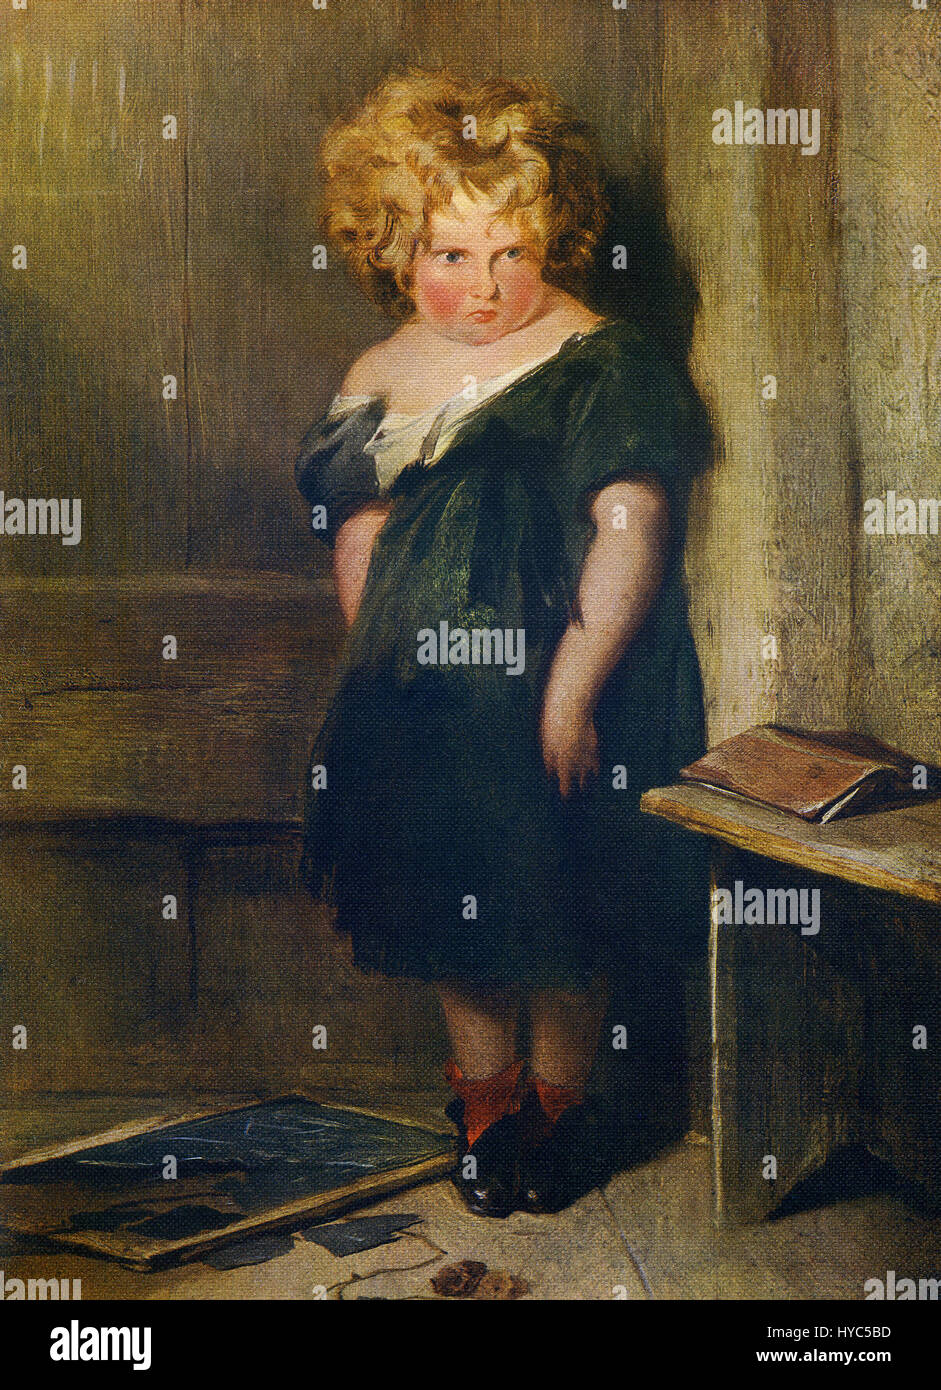 This painting, titled Naughty Child, is by the English painter, sculptor, and engraver  Sir Edwin Landseer (1802 Stock Photo